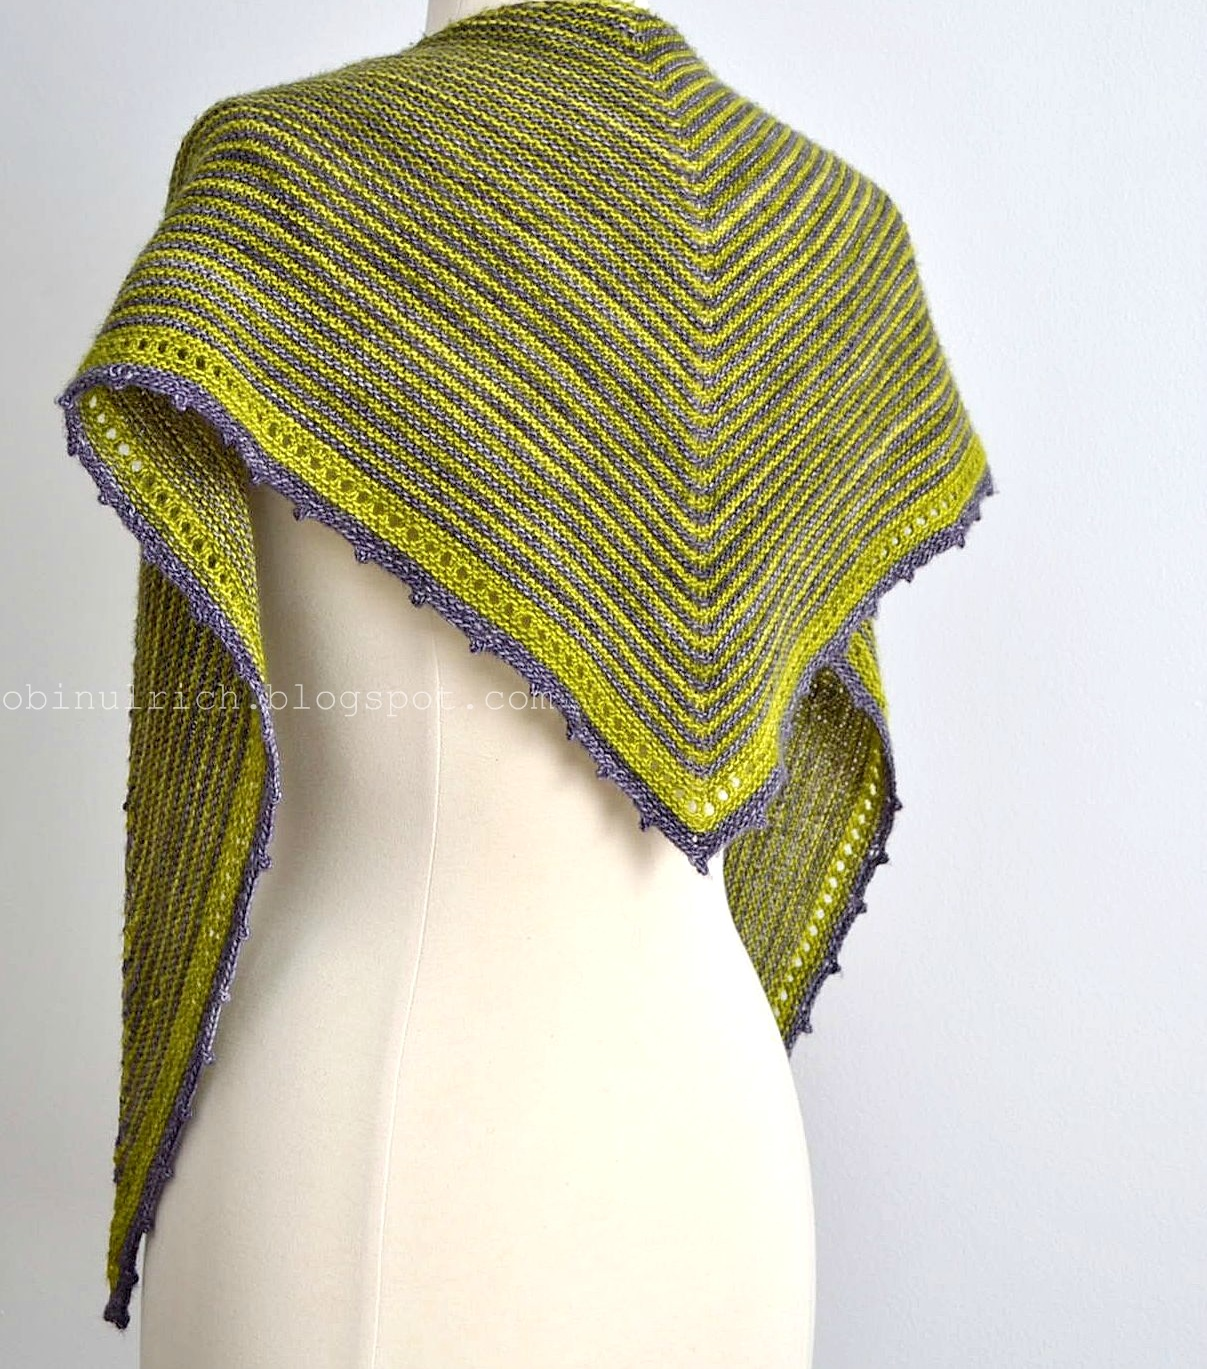 Robin Ulrich Studio: New Knitting Pattern - KATRIEL Shawl